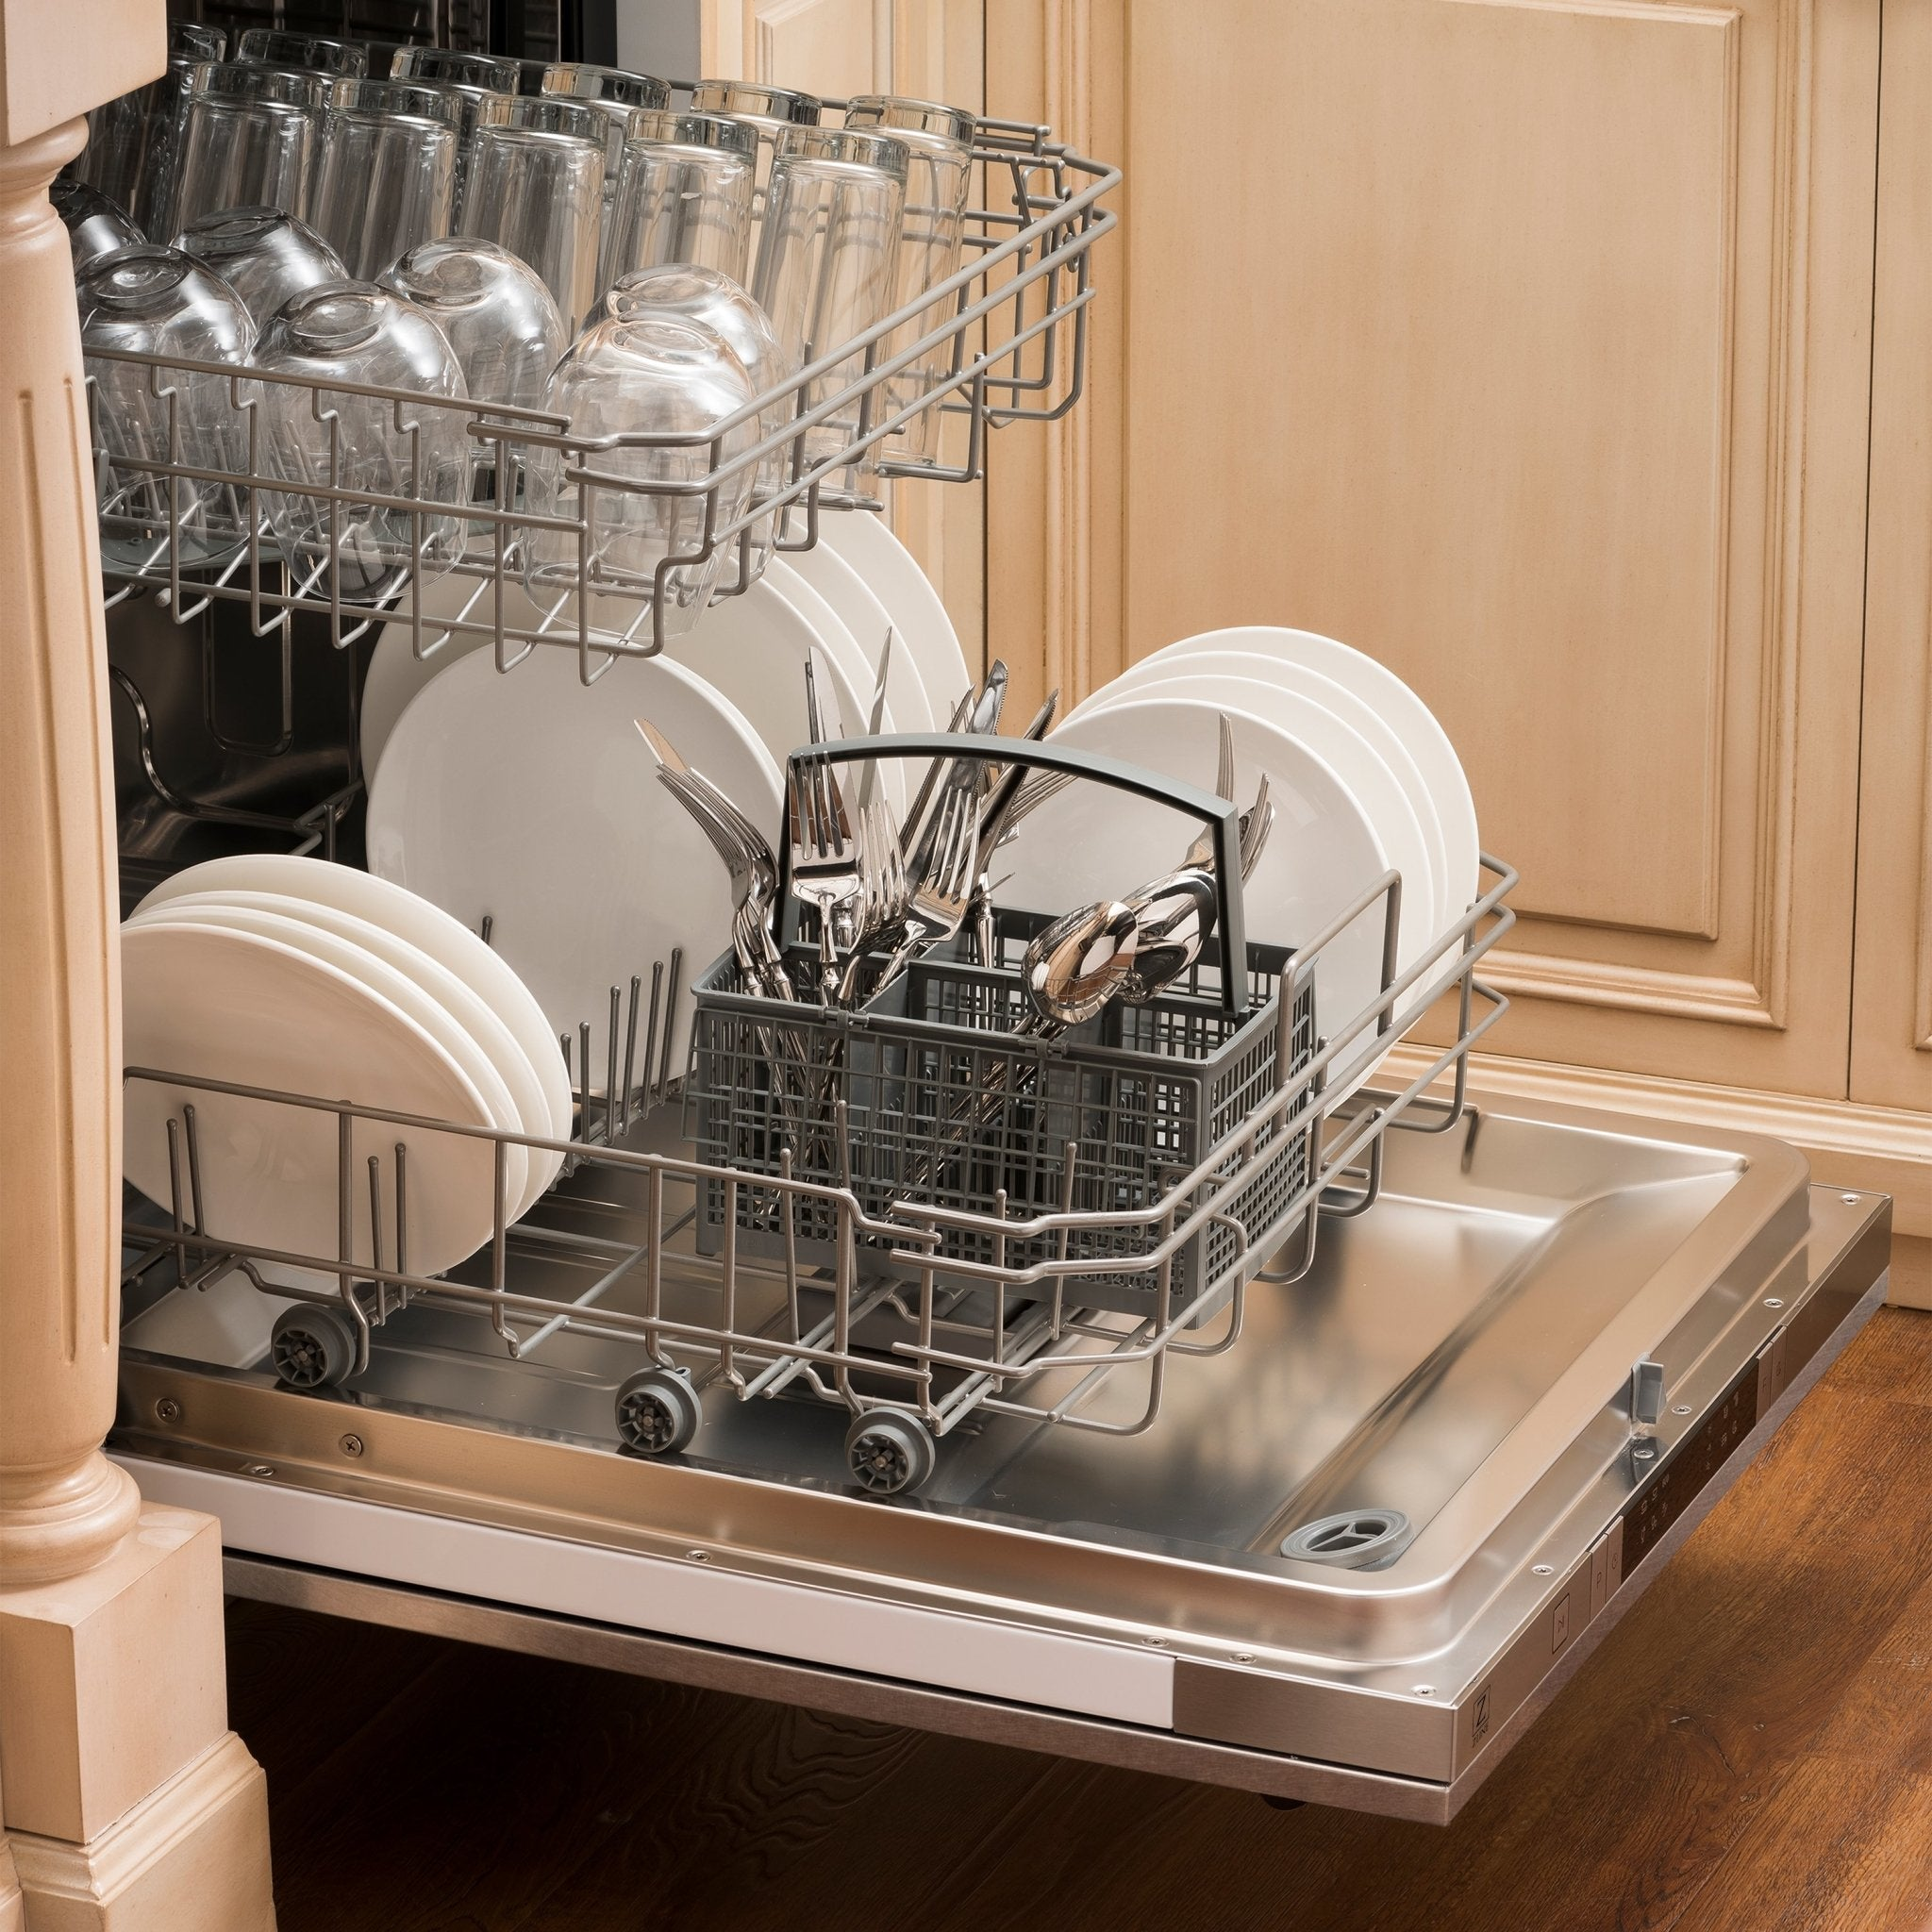 "ZLINE 24"" Top Control Dishwasher with Stainless Steel Tub and Modern Style Handle - Dishwashers - ZLINE Kitchen and Bath -"